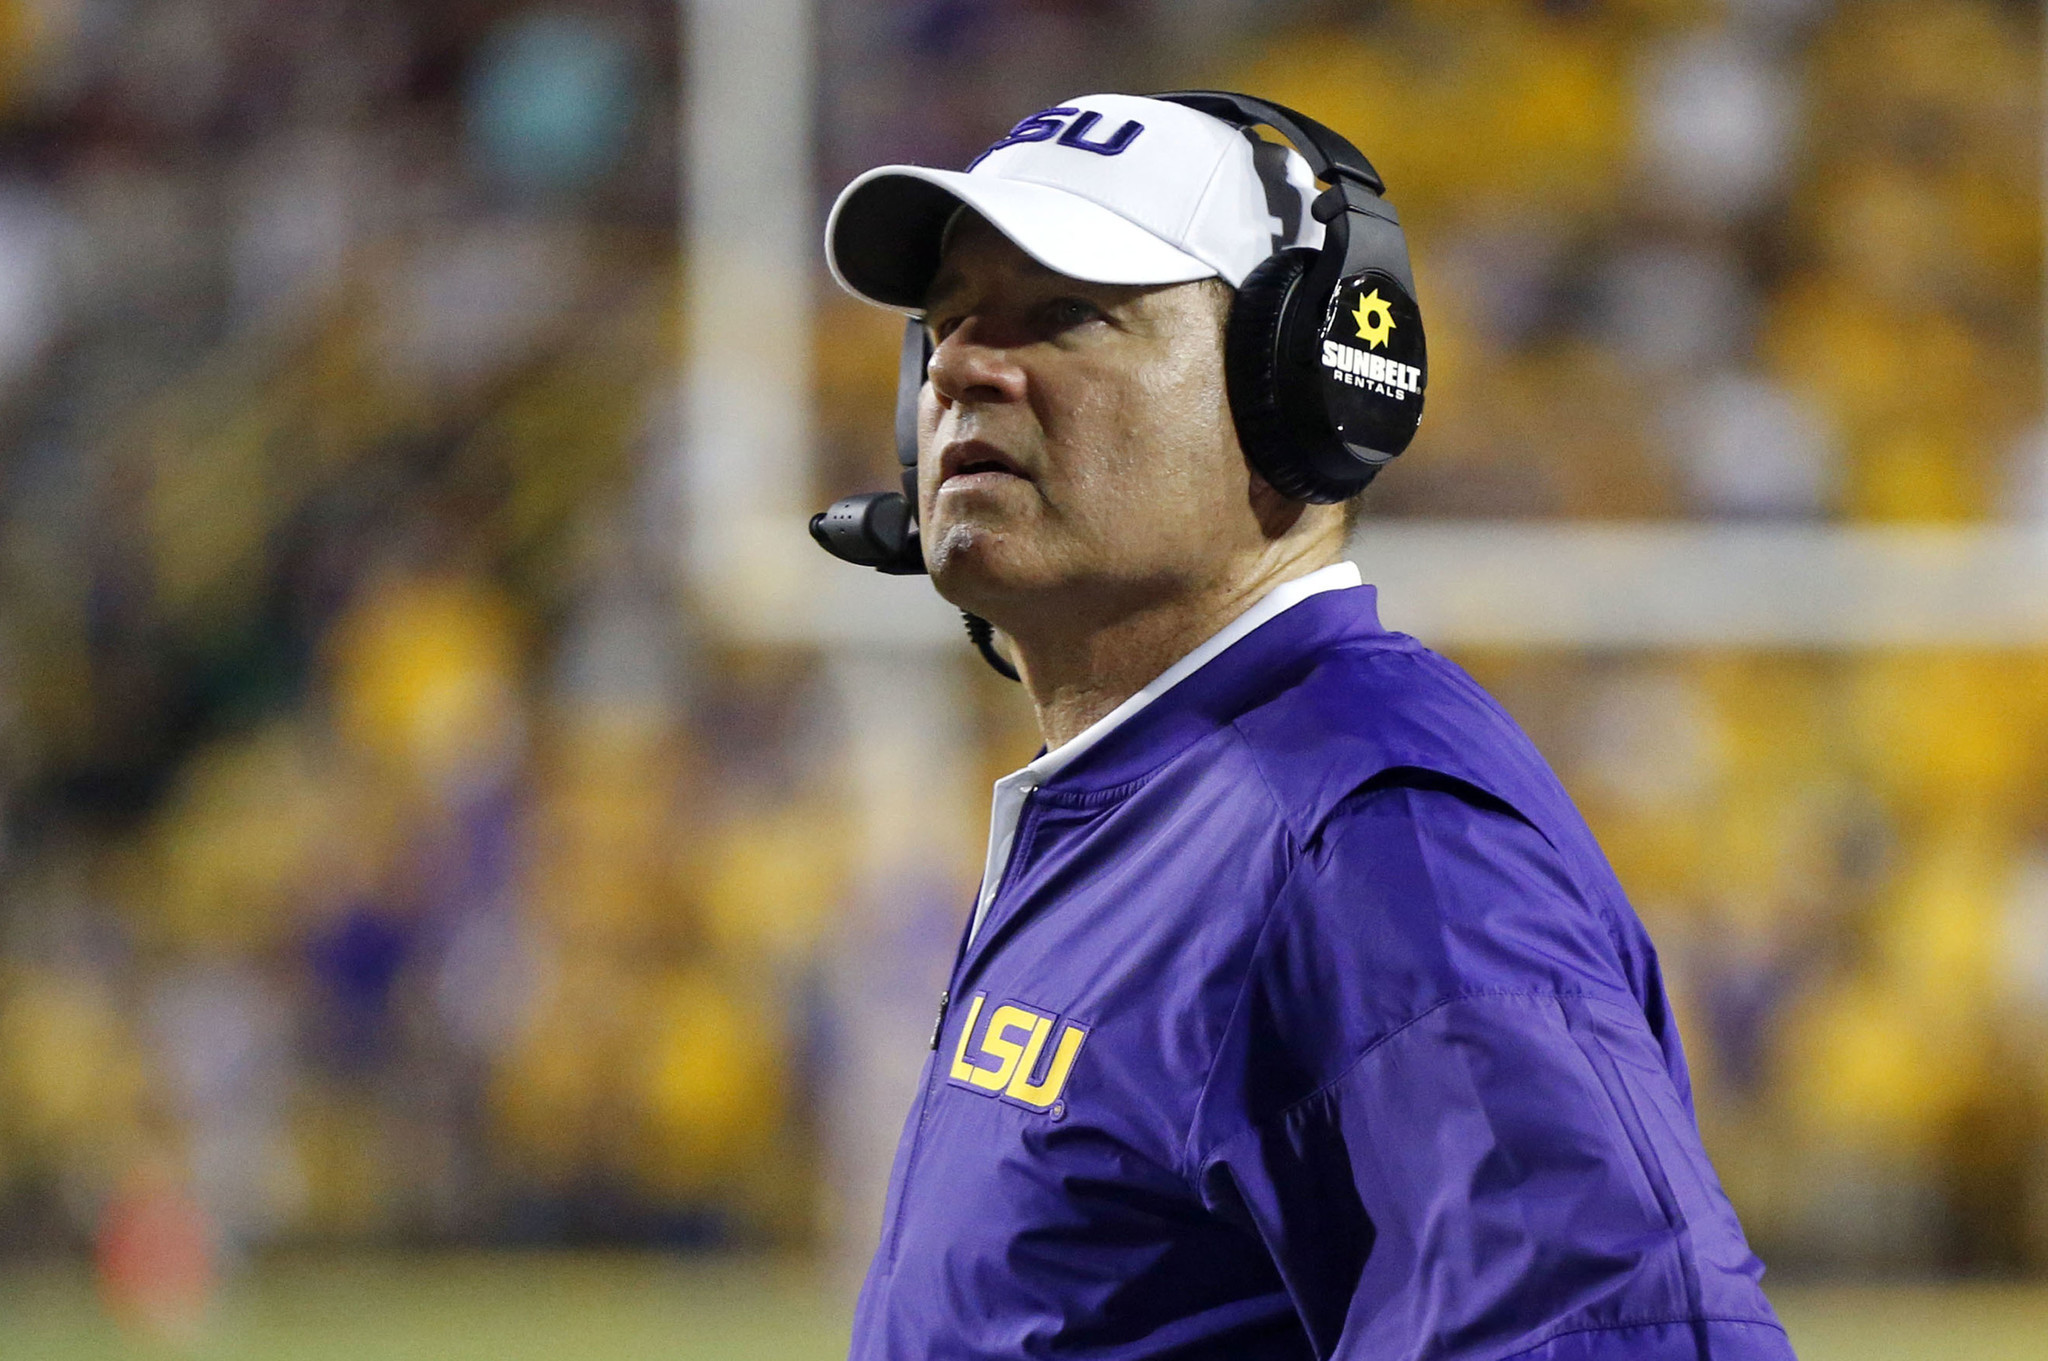 098443a40ec7f The quirks and heart of Les Miles